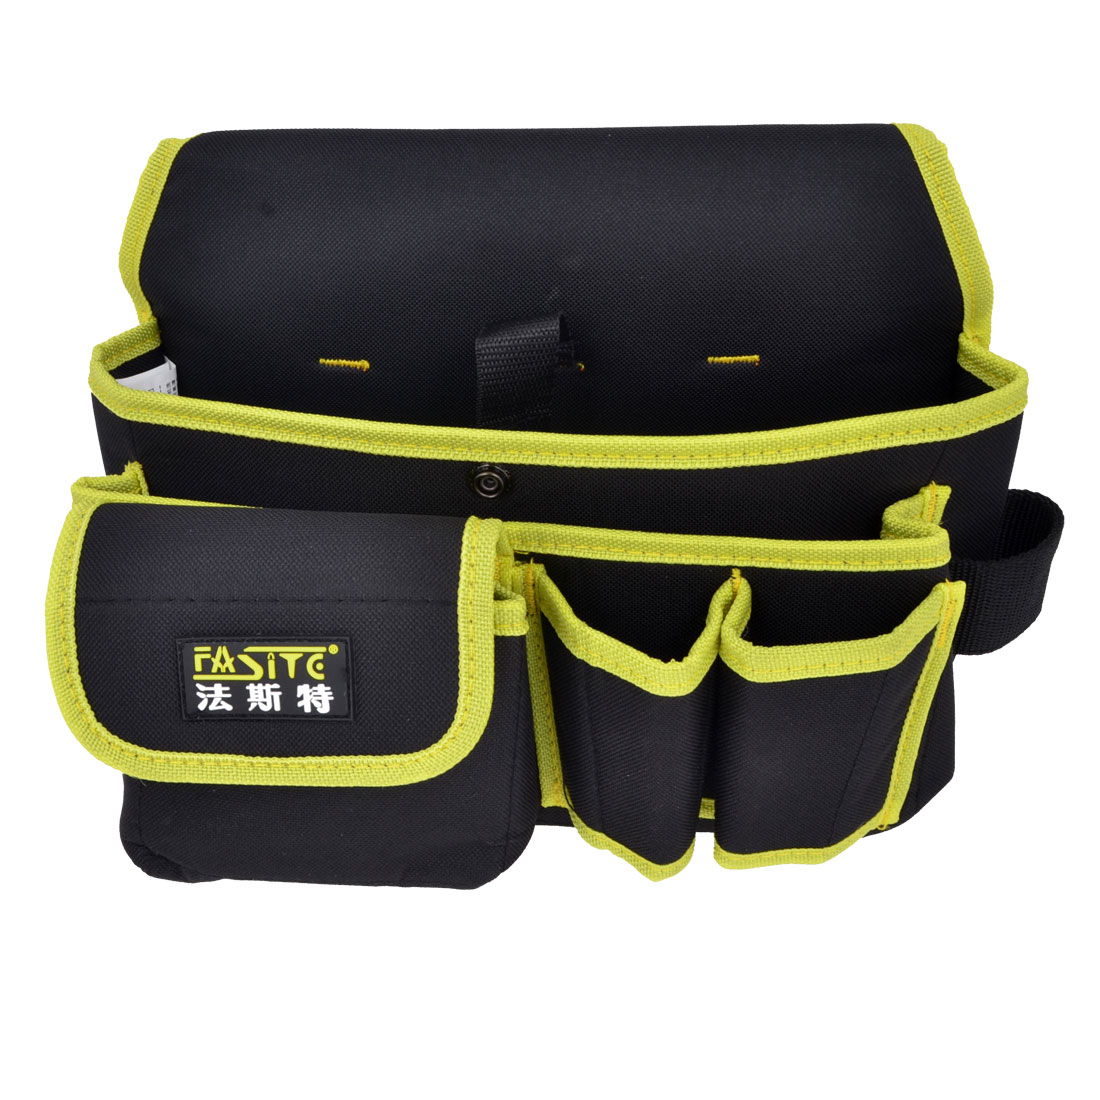 Black Yellow Canvas Electrician Tool Organizer Waist Bag Pouch